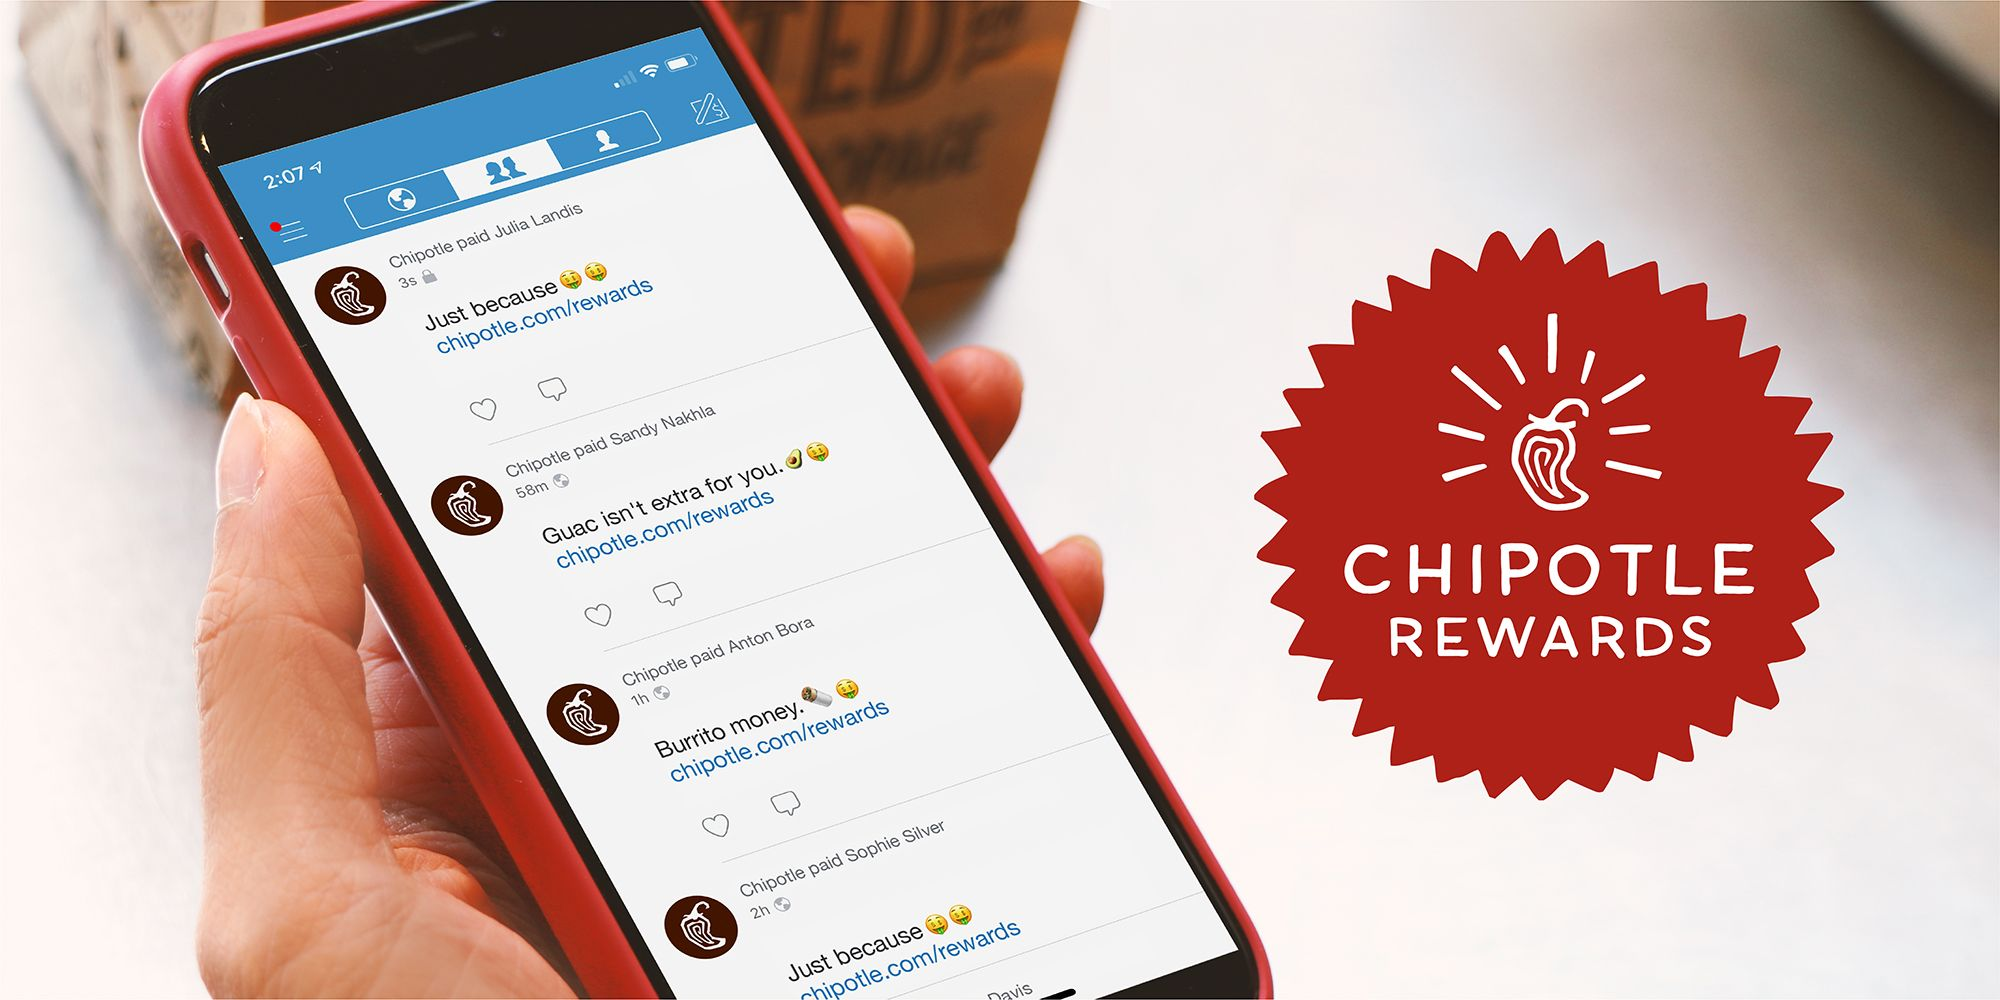 Chipotle Rolls Out Nationwide Rewards Program - Chipotle